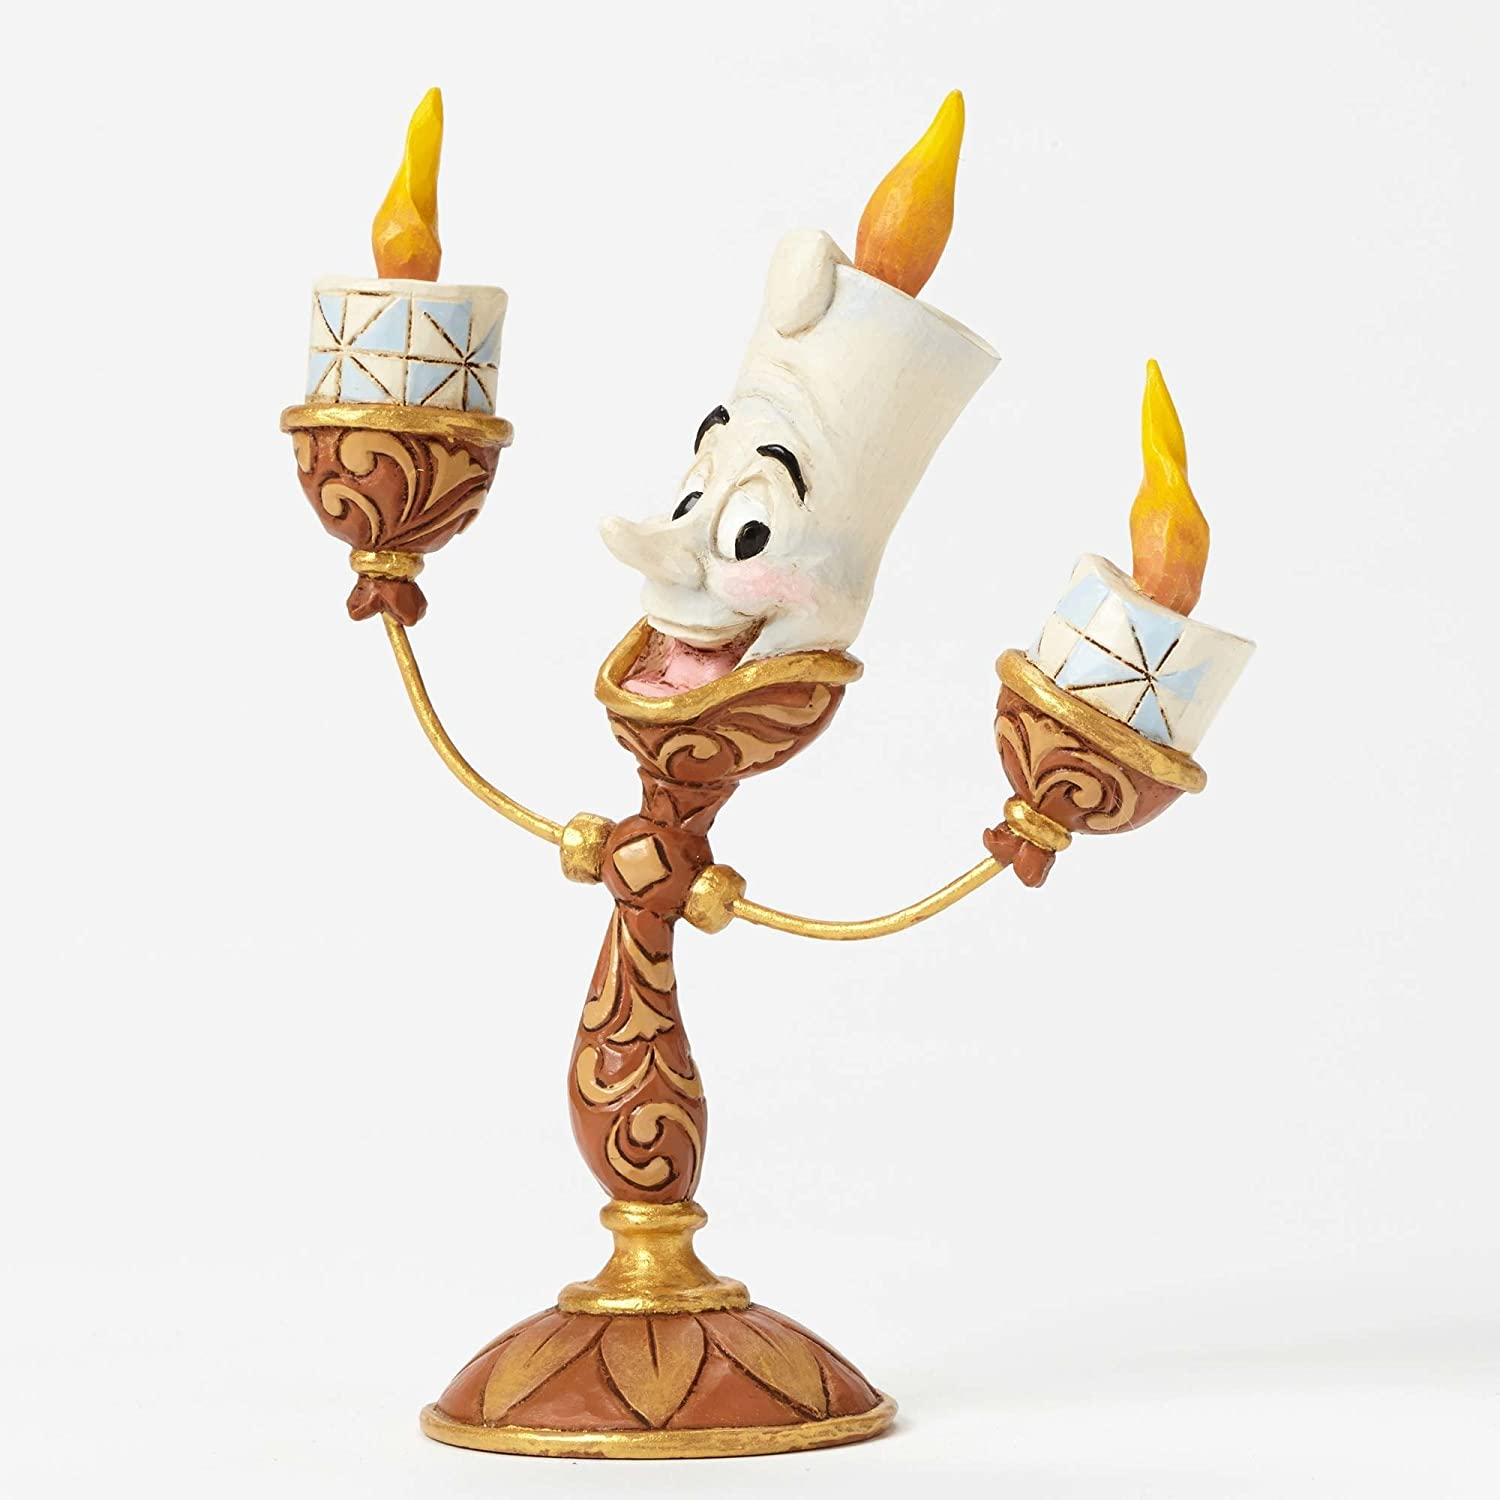 Disney Traditions by Jim Shore 4049620 DSTRA Lumiere Figurine